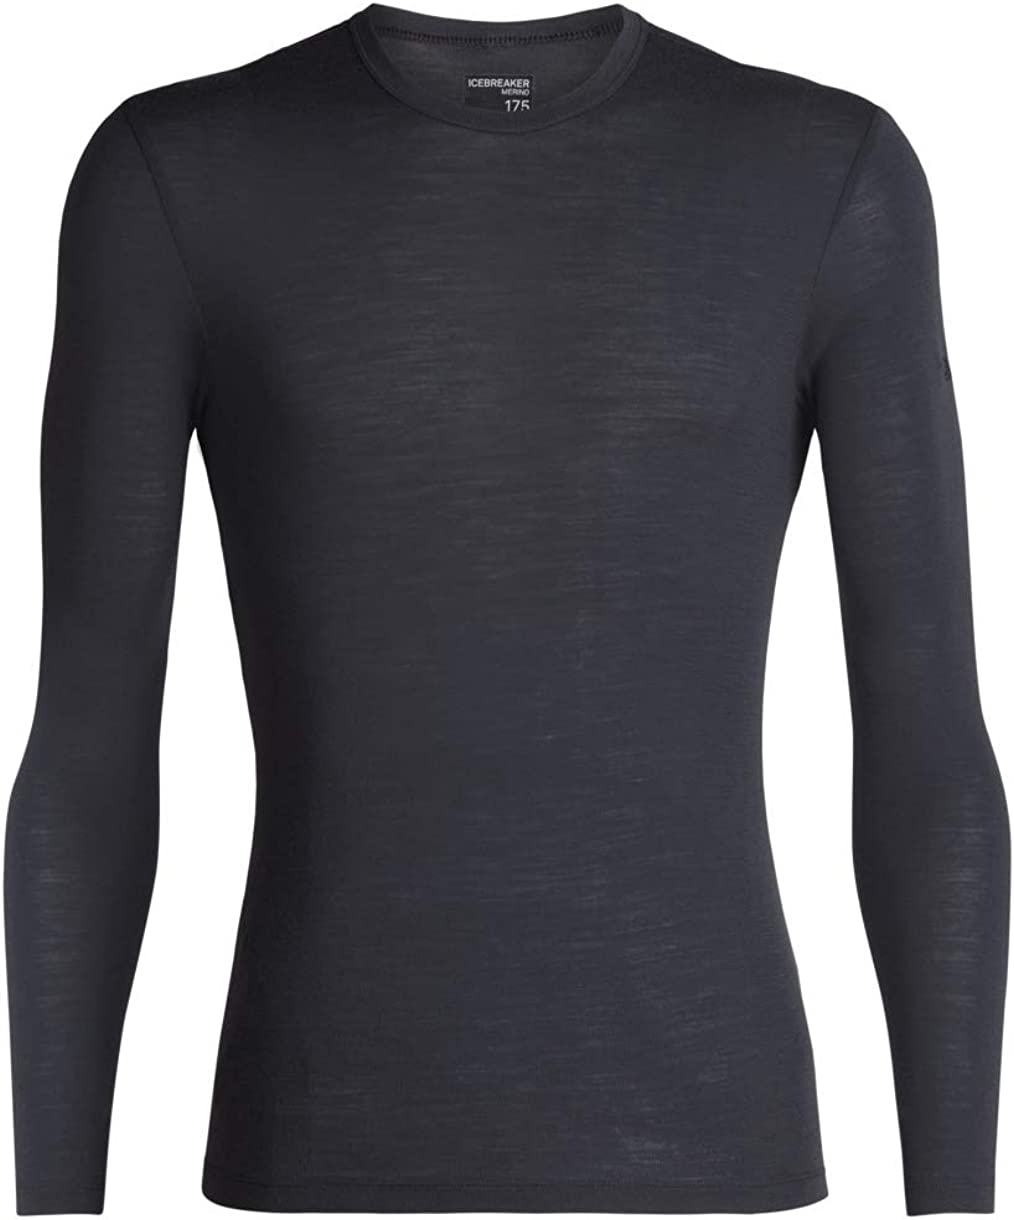 Icebreaker Merino Mens 175 Everyday Merino Wool Base Layer Long Sleeve T-Shirt